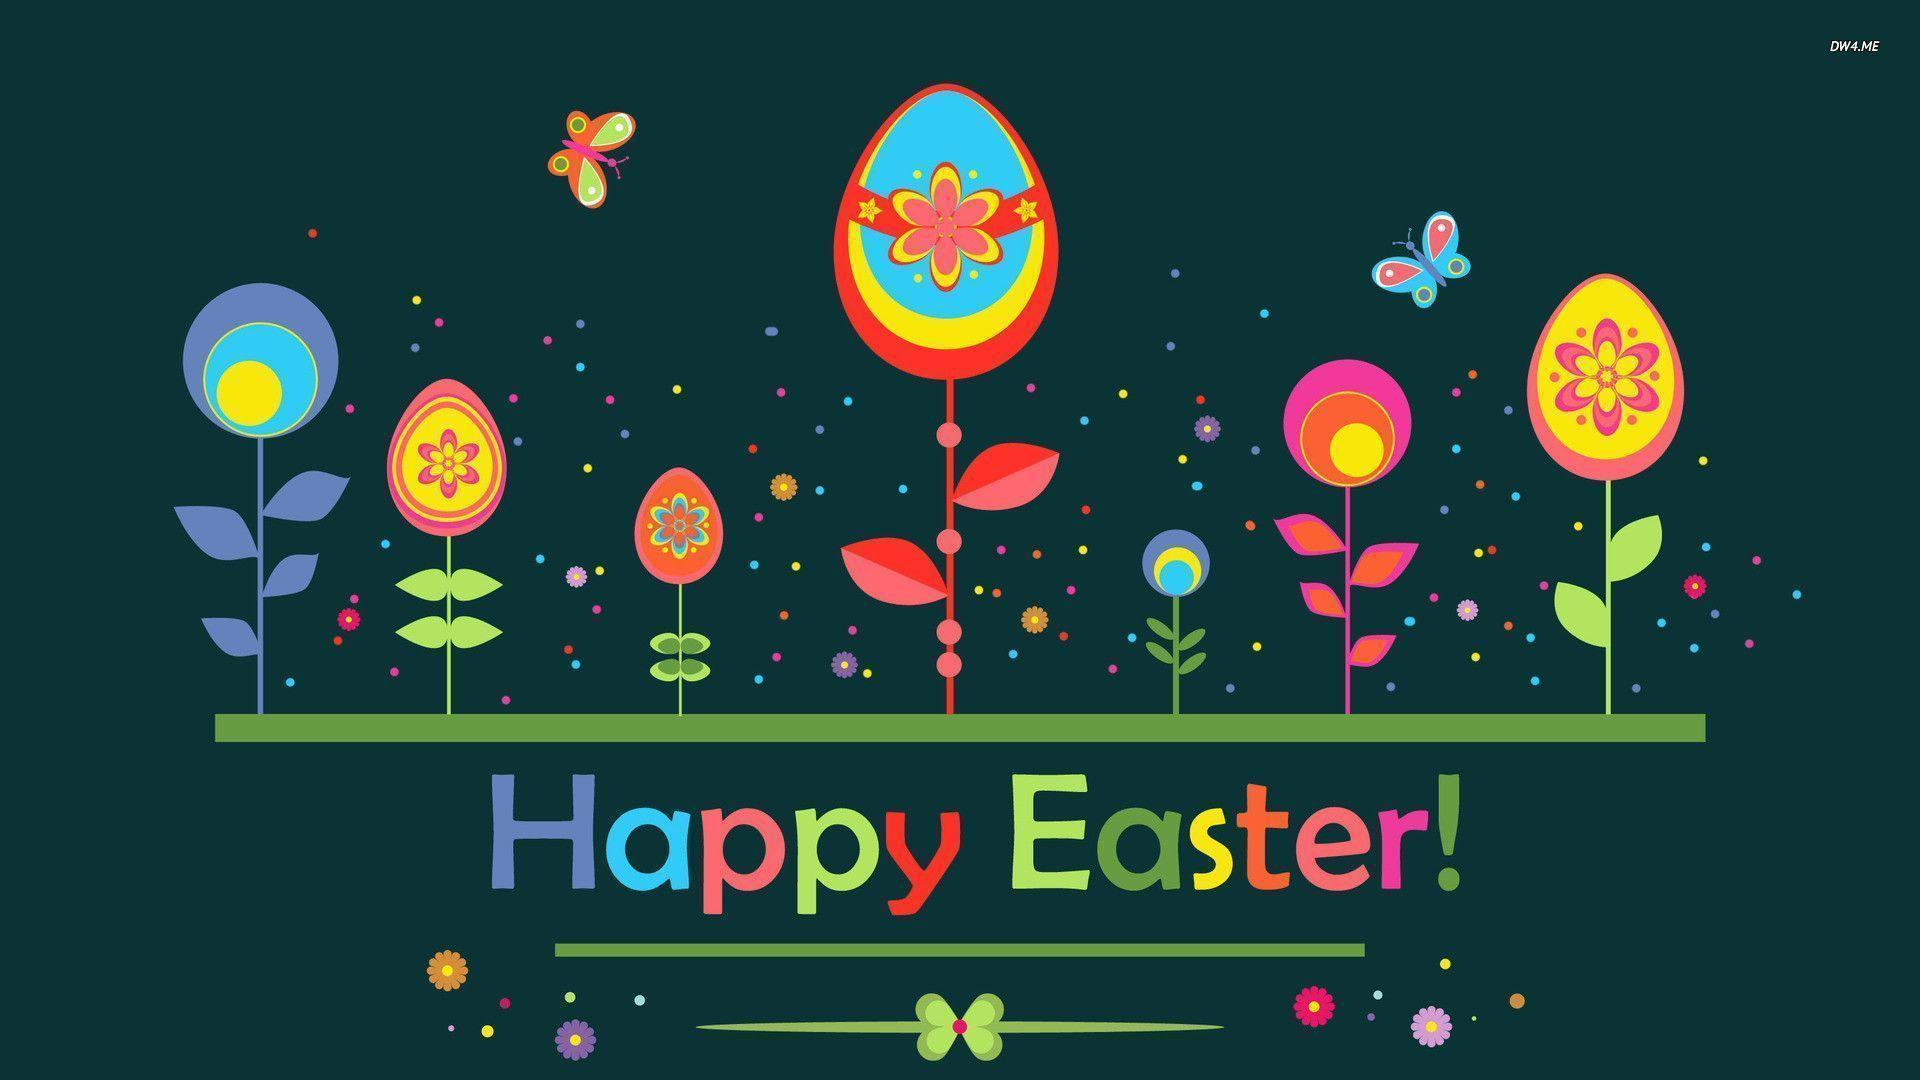 Wallpapers For > Happy Easter Wallpapers